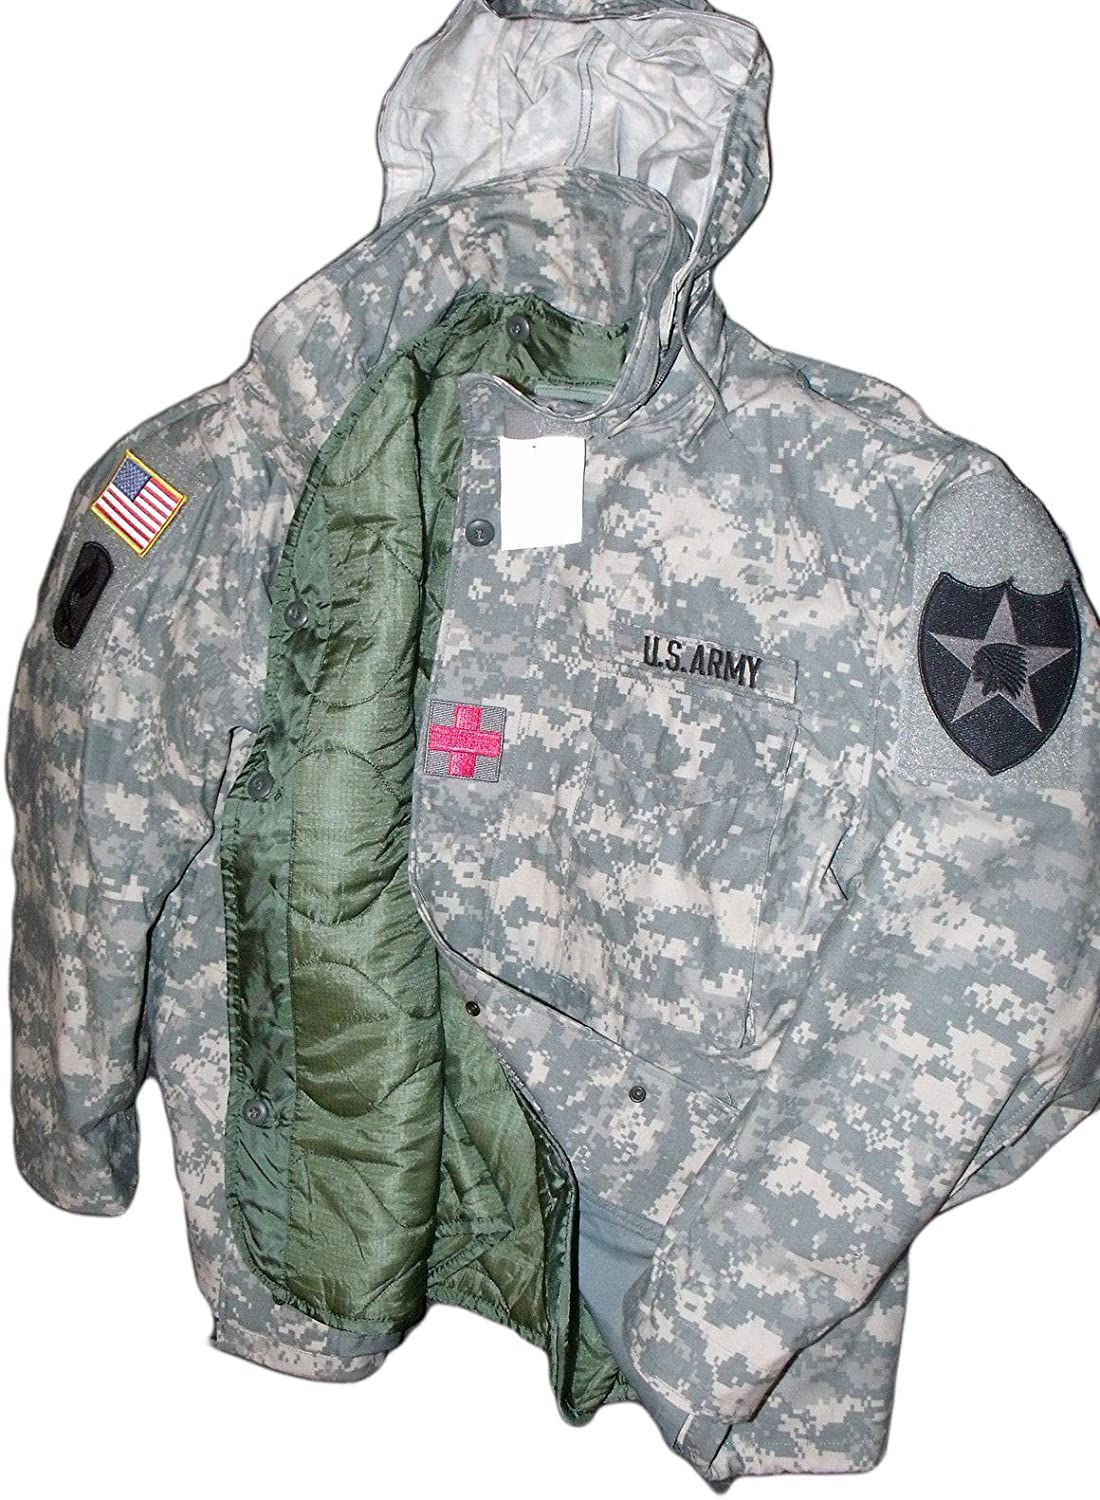 New Made in US Genuine Issue GI Military Army M-65 ACU Cold Weather Field Coat Jacket + Liner + Patches